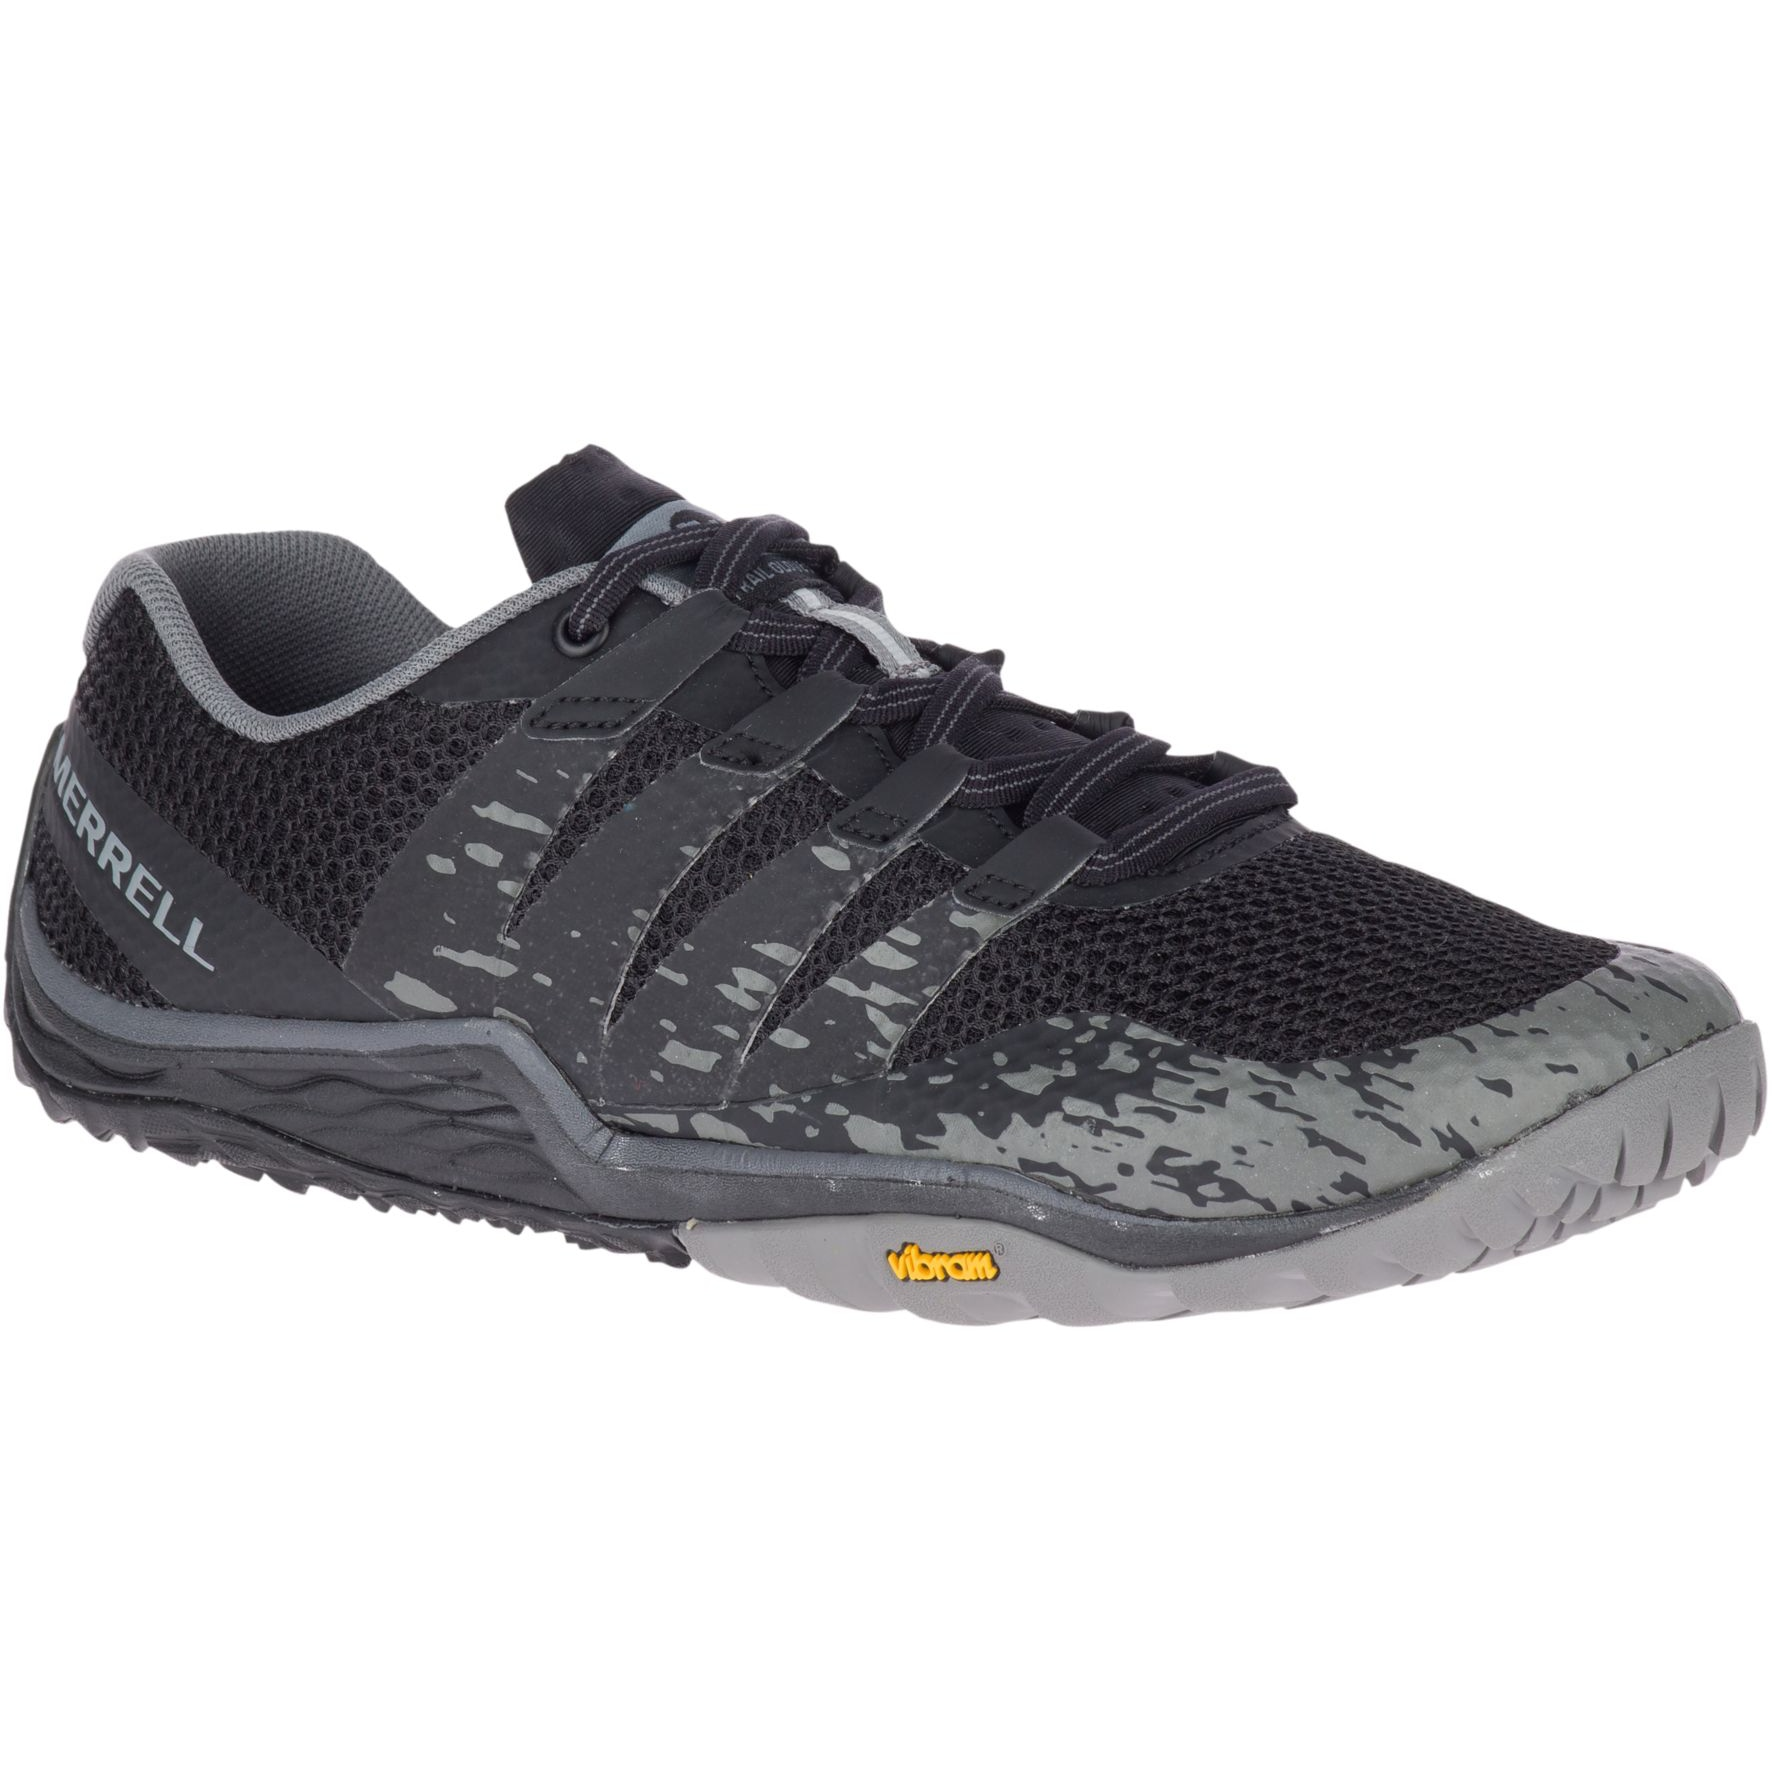 Trail Glove 5 Shoe - Women's